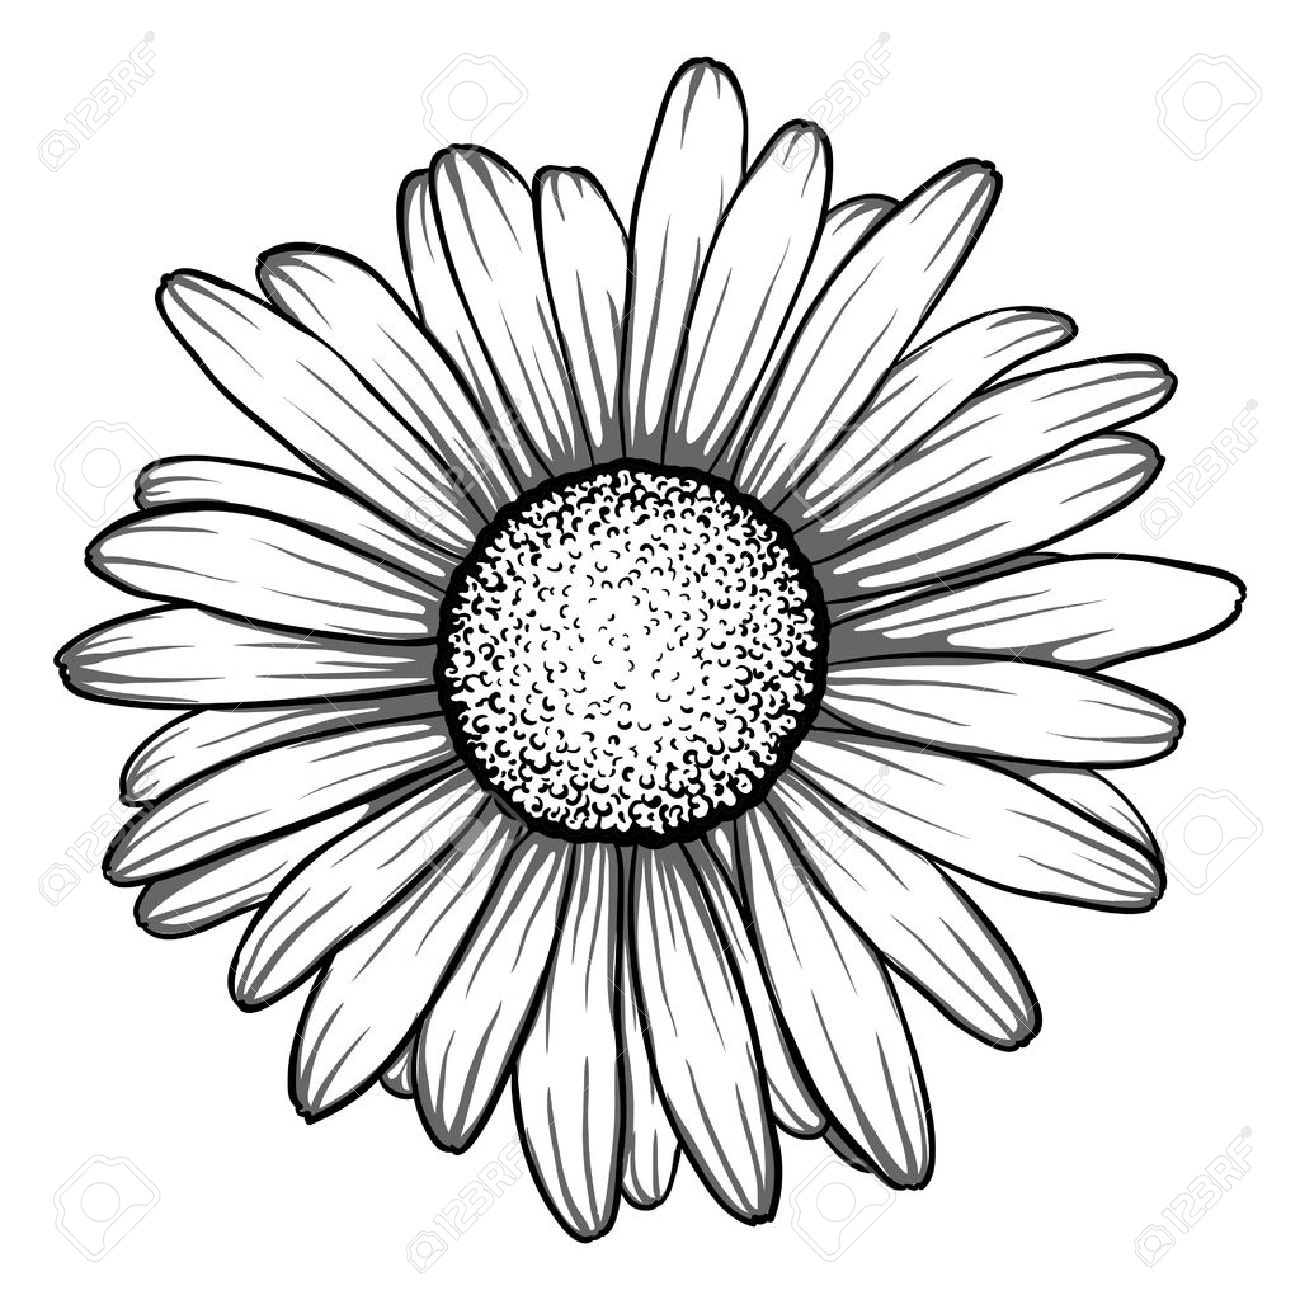 Beautiful monochrome black and white daisy flower isolated for greeting cards and invitations of